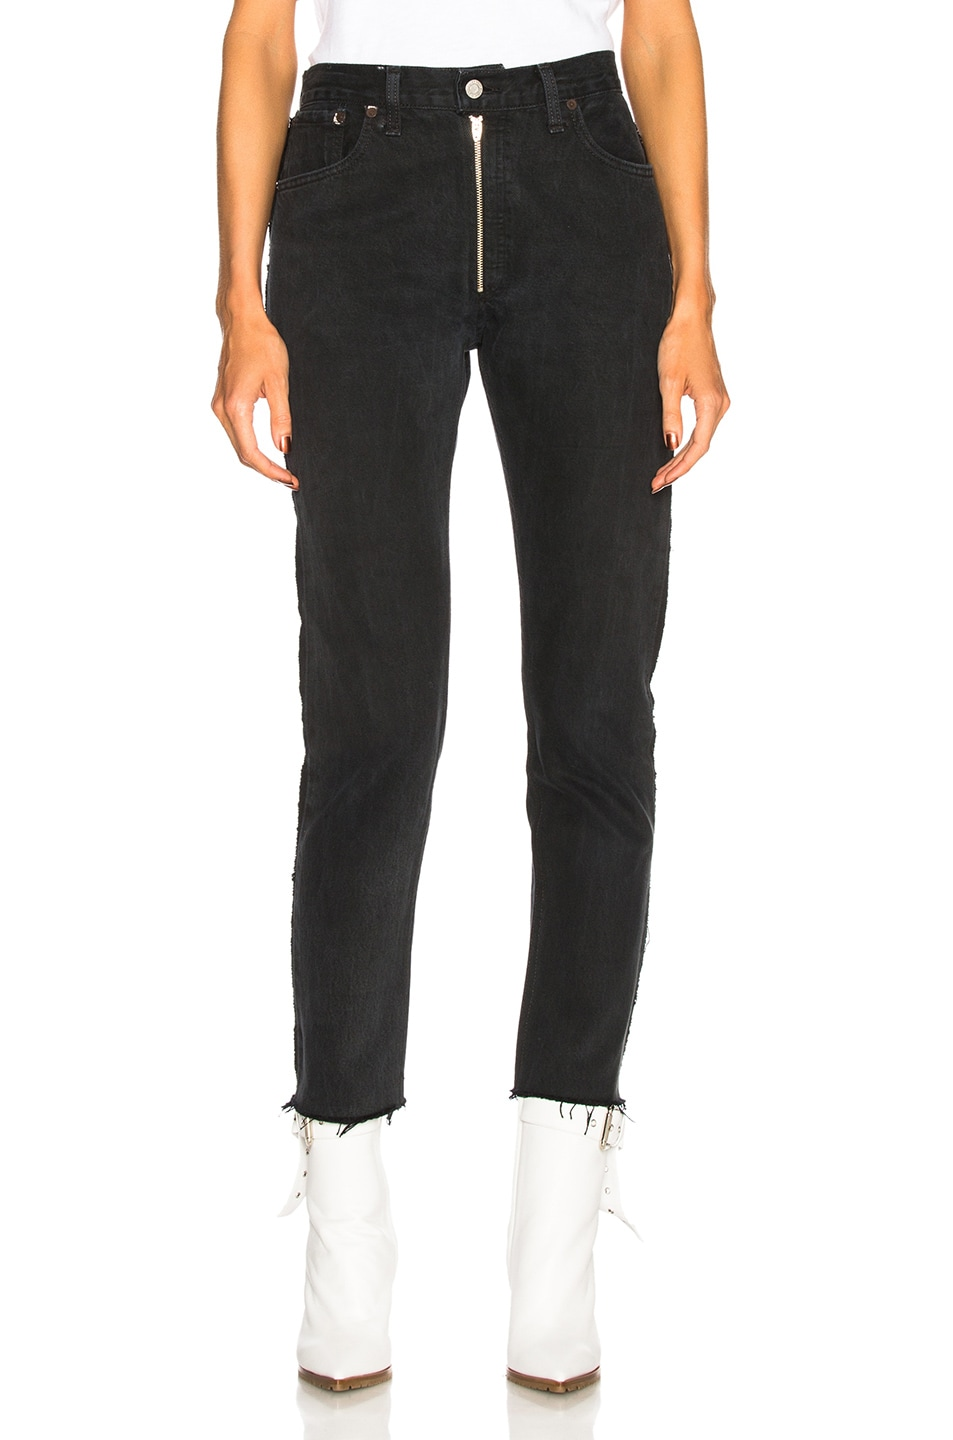 Image 1 of RE/DONE LEVI'S High Rise Zip Front Ankle in Black